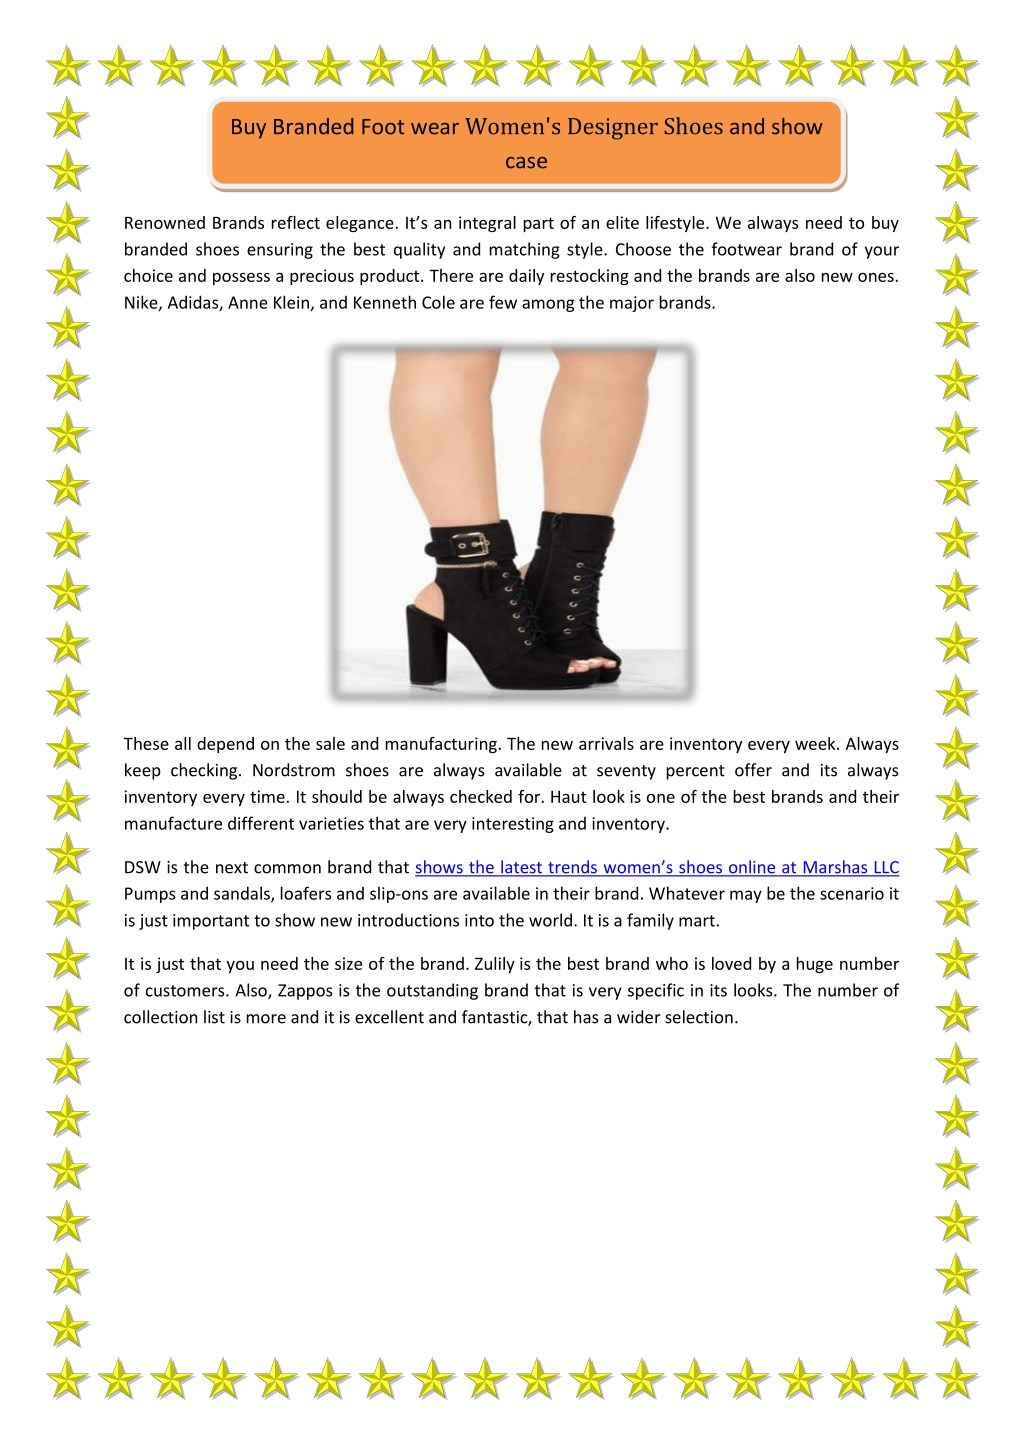 Ppt Buy Branded Foot Wear Women S Designer Shoes And Showcase Powerpoint Presentation Id 8028792